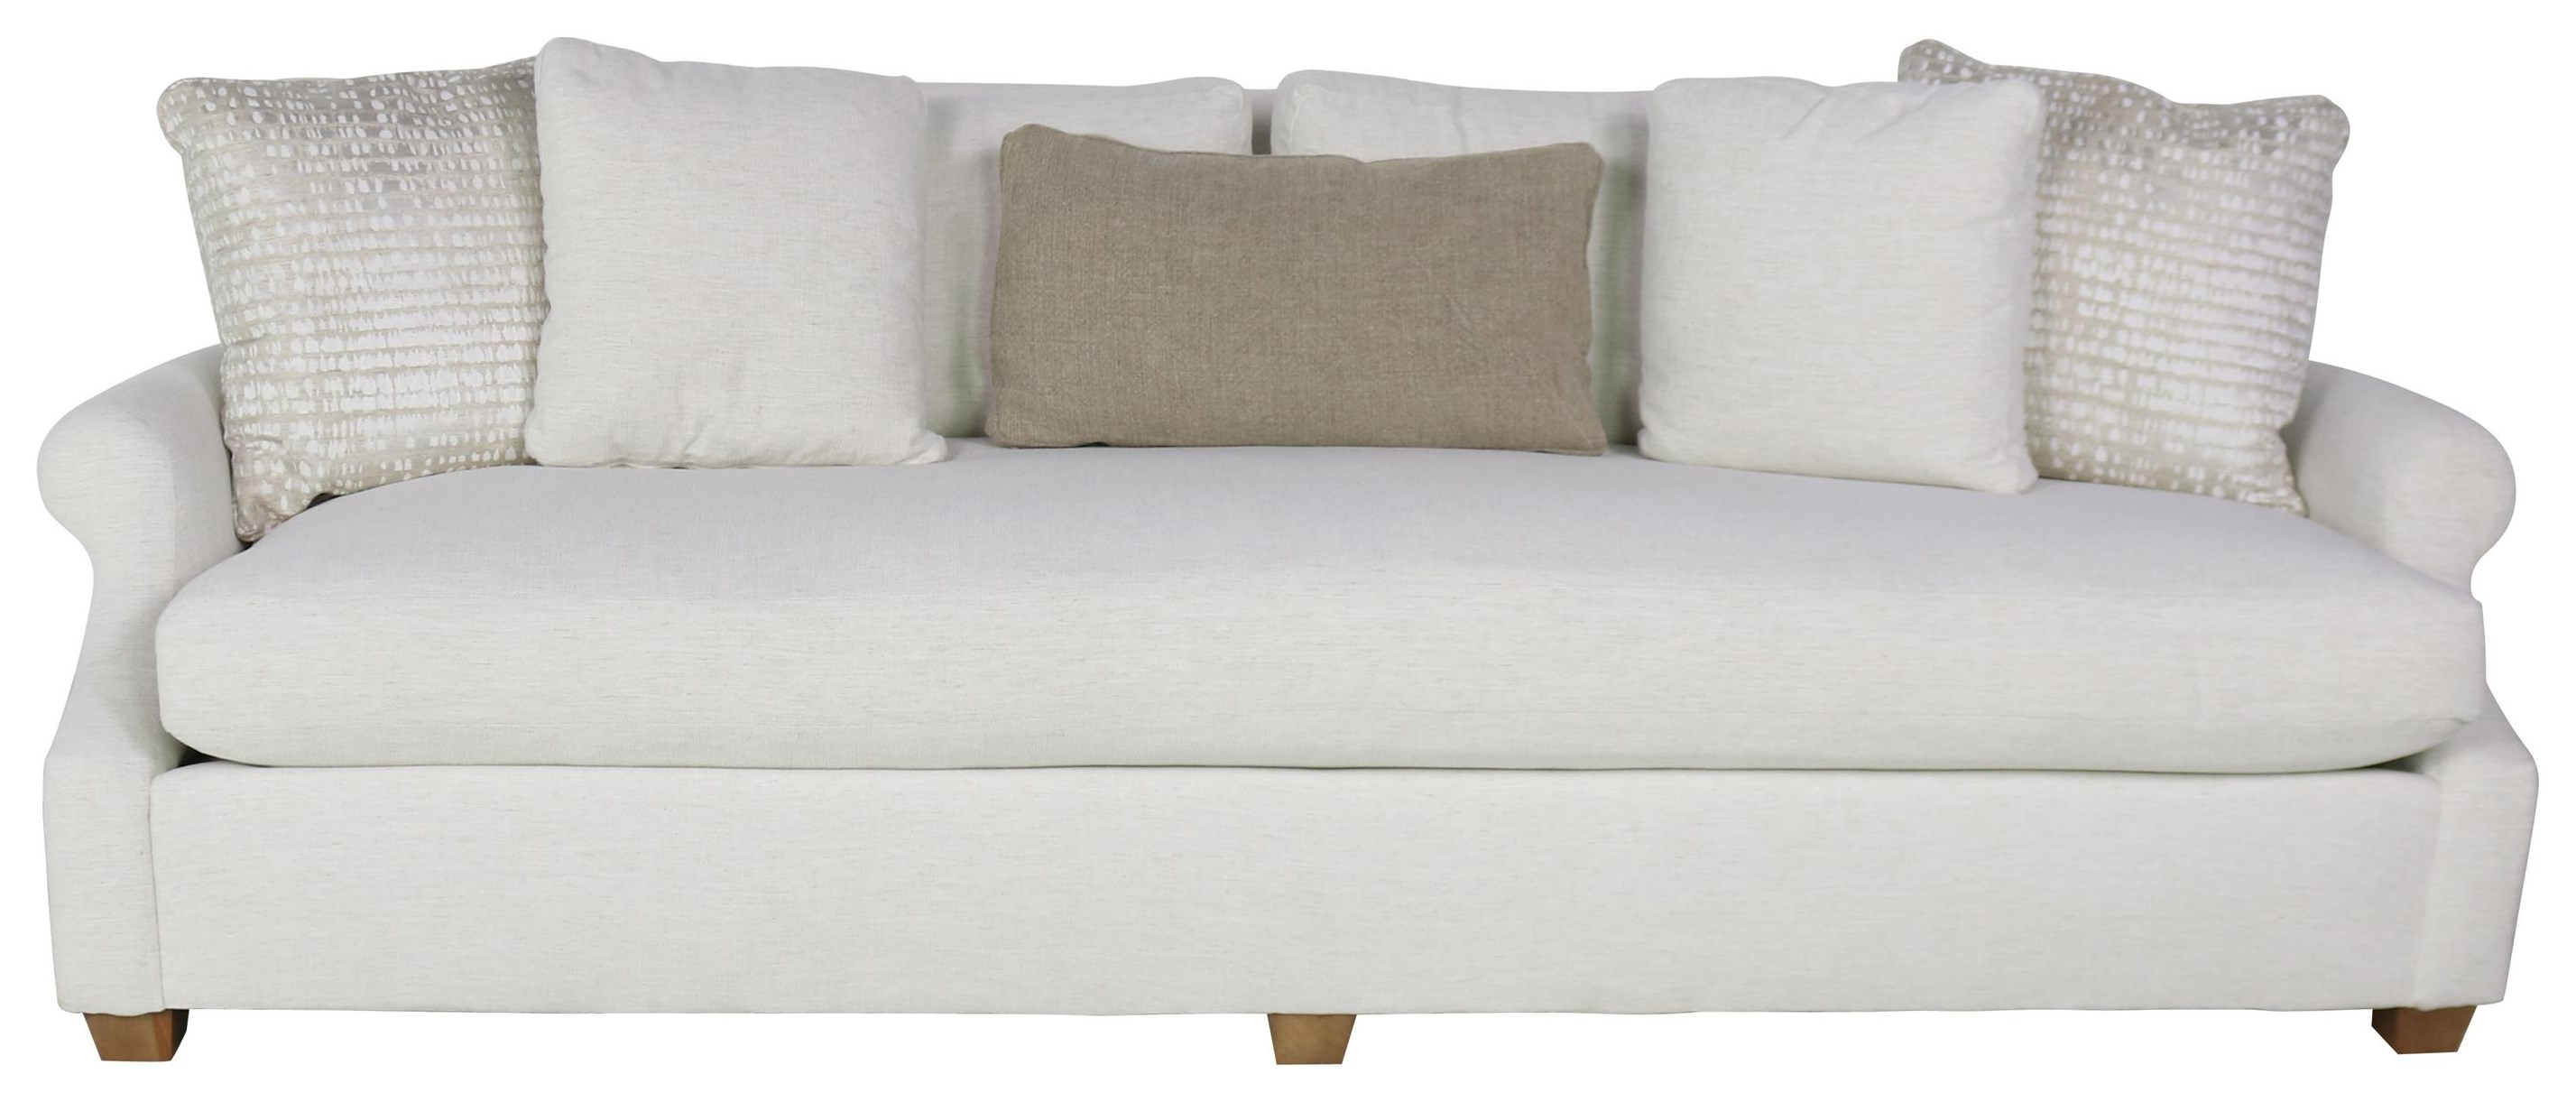 Robin Bruce Bristol Contemporary 98 Sofa With Bench Seat